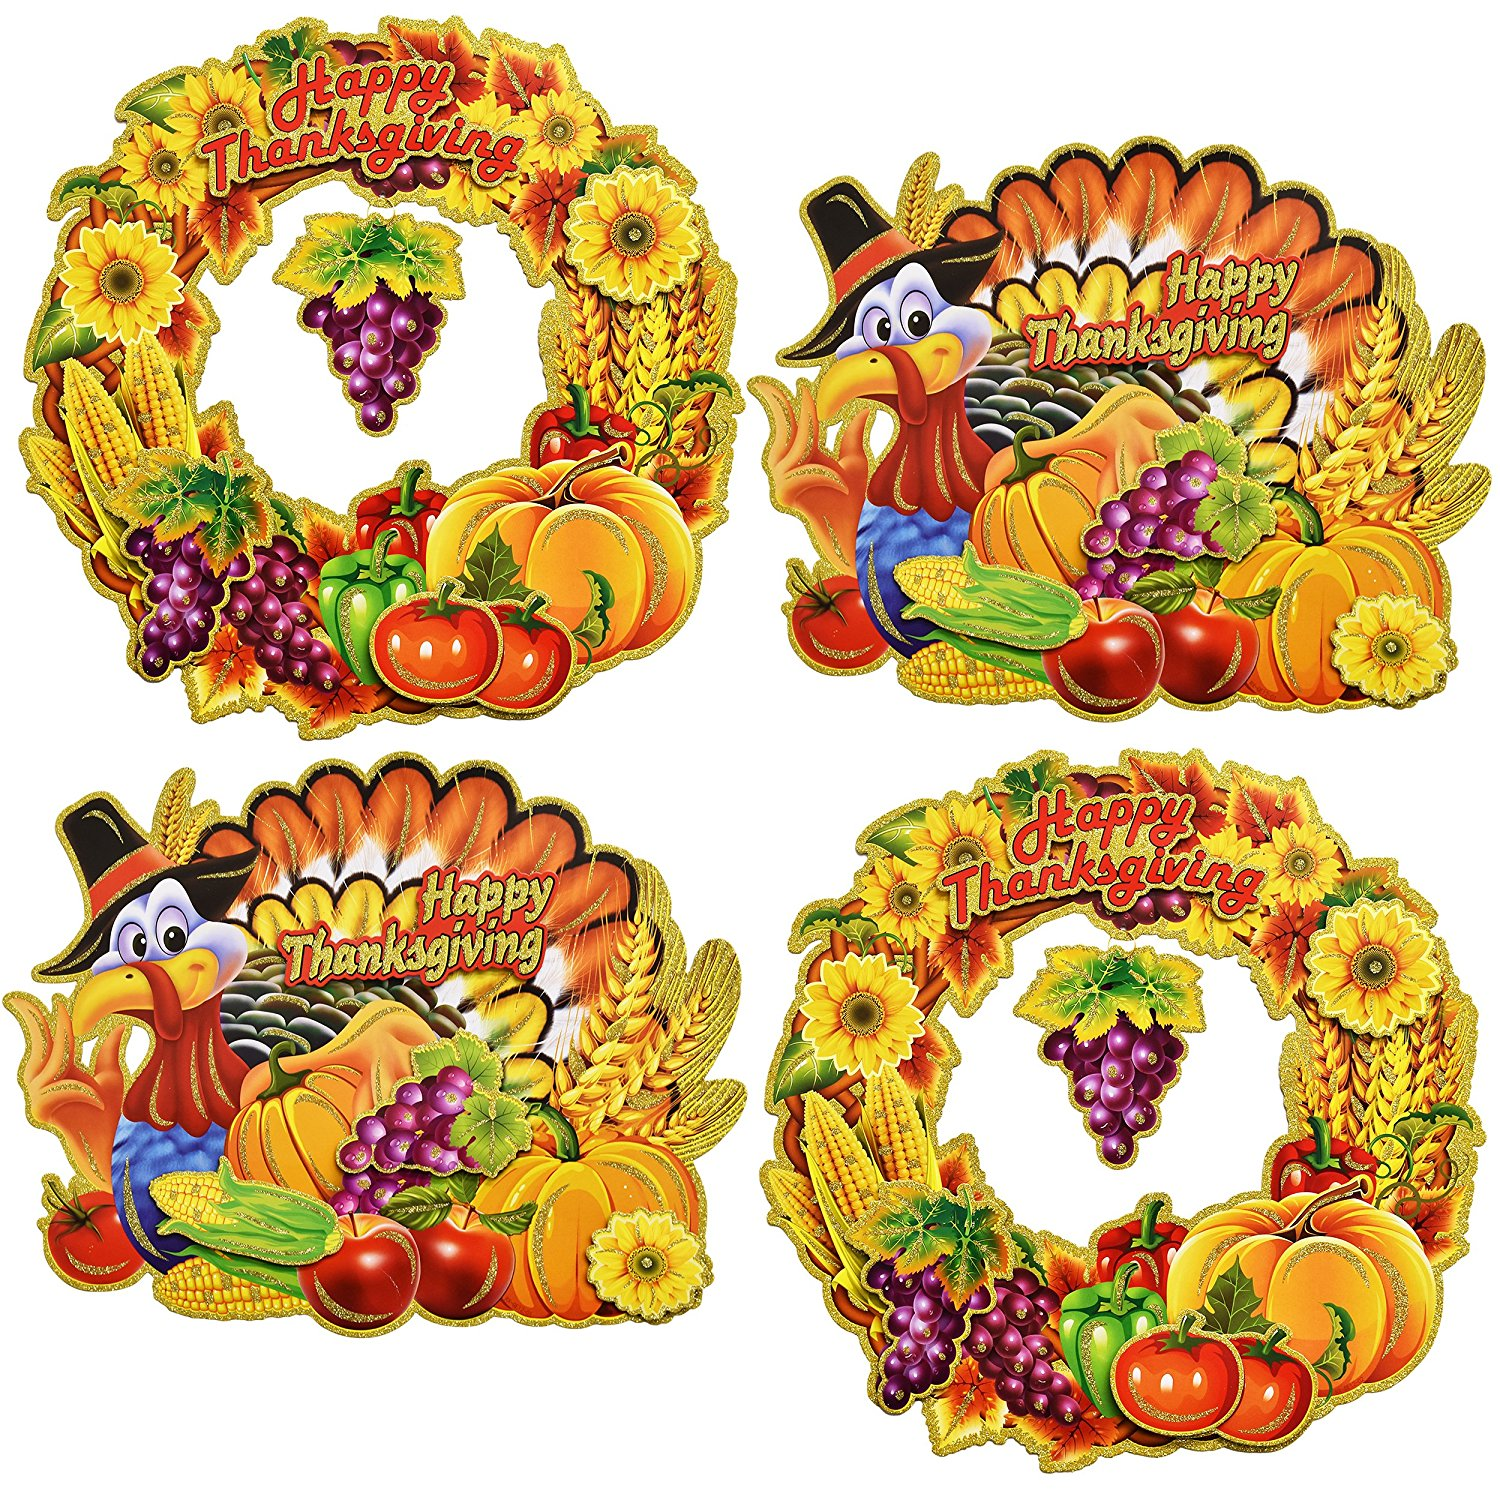 Happy Thanksgiving Cutout Hanging Decorations Harvest Autumn Turkey and Wreath Signs Fall Party Favor Supplies, 16 Inch By Gift Boutique